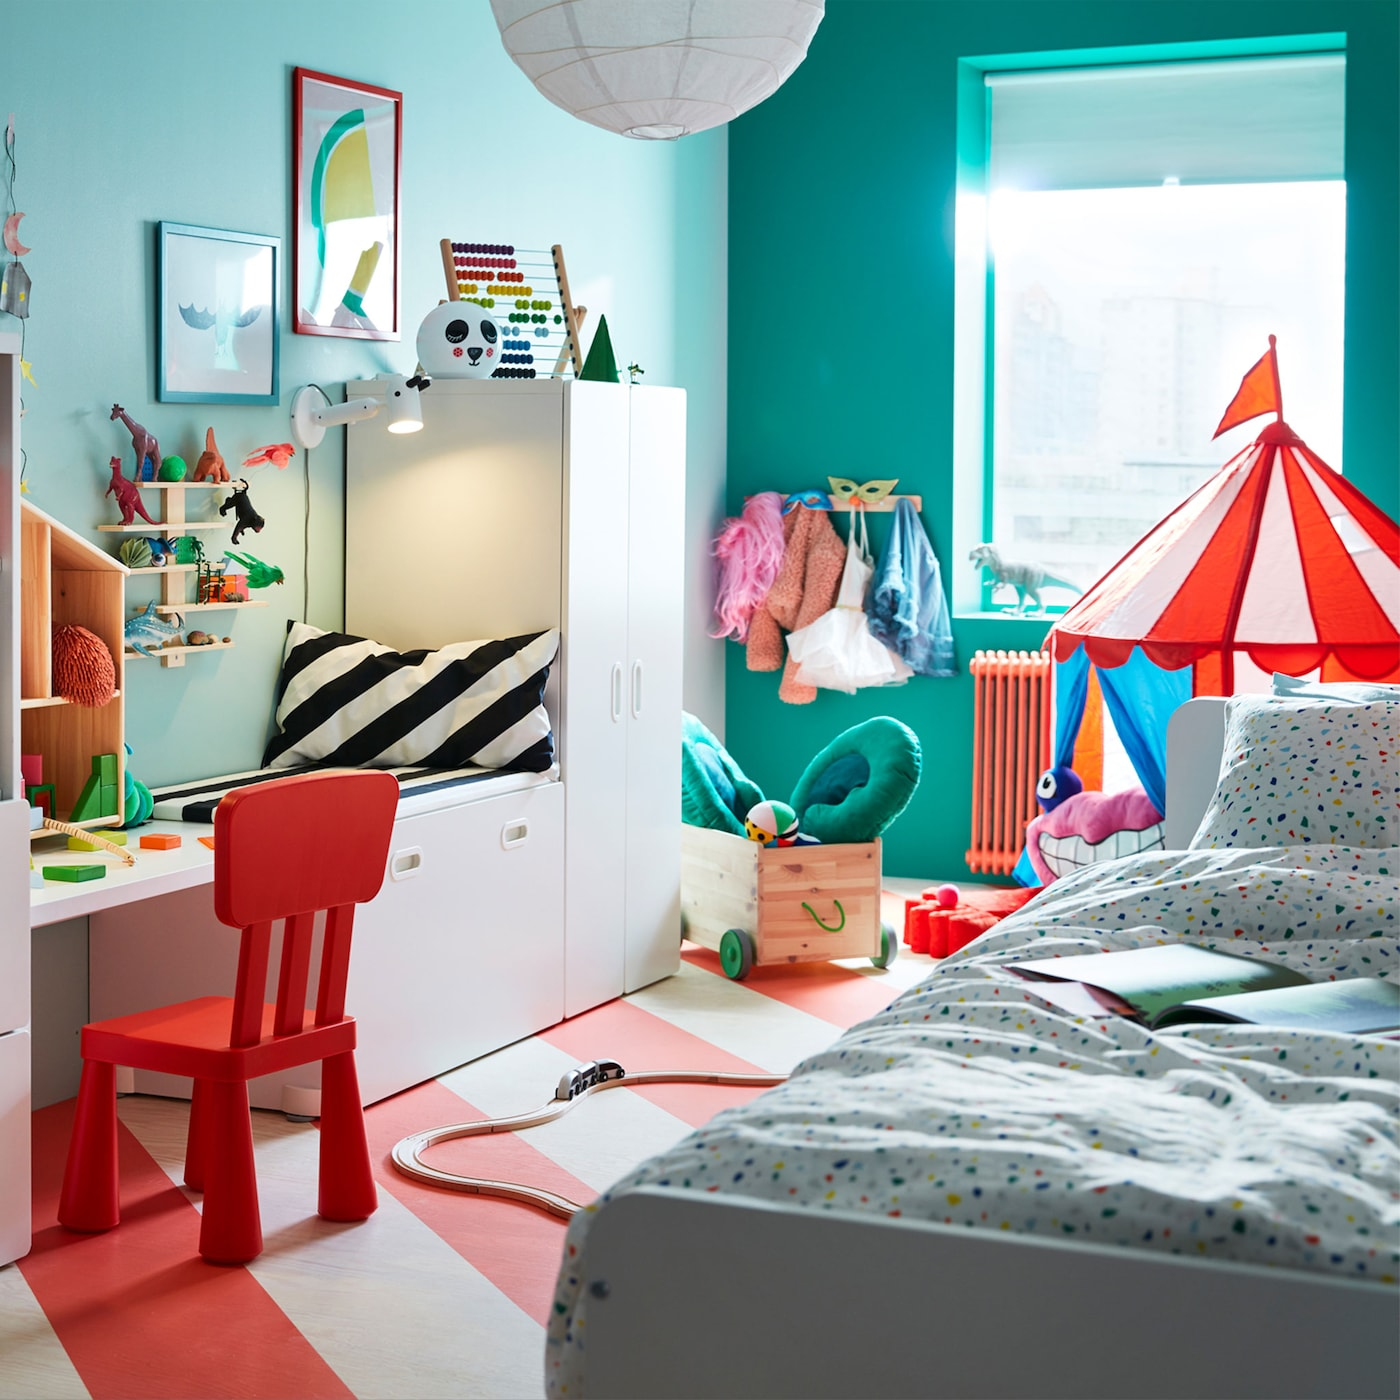 Ikea Kids Room Inspiration: Children's Bedroom Furniture